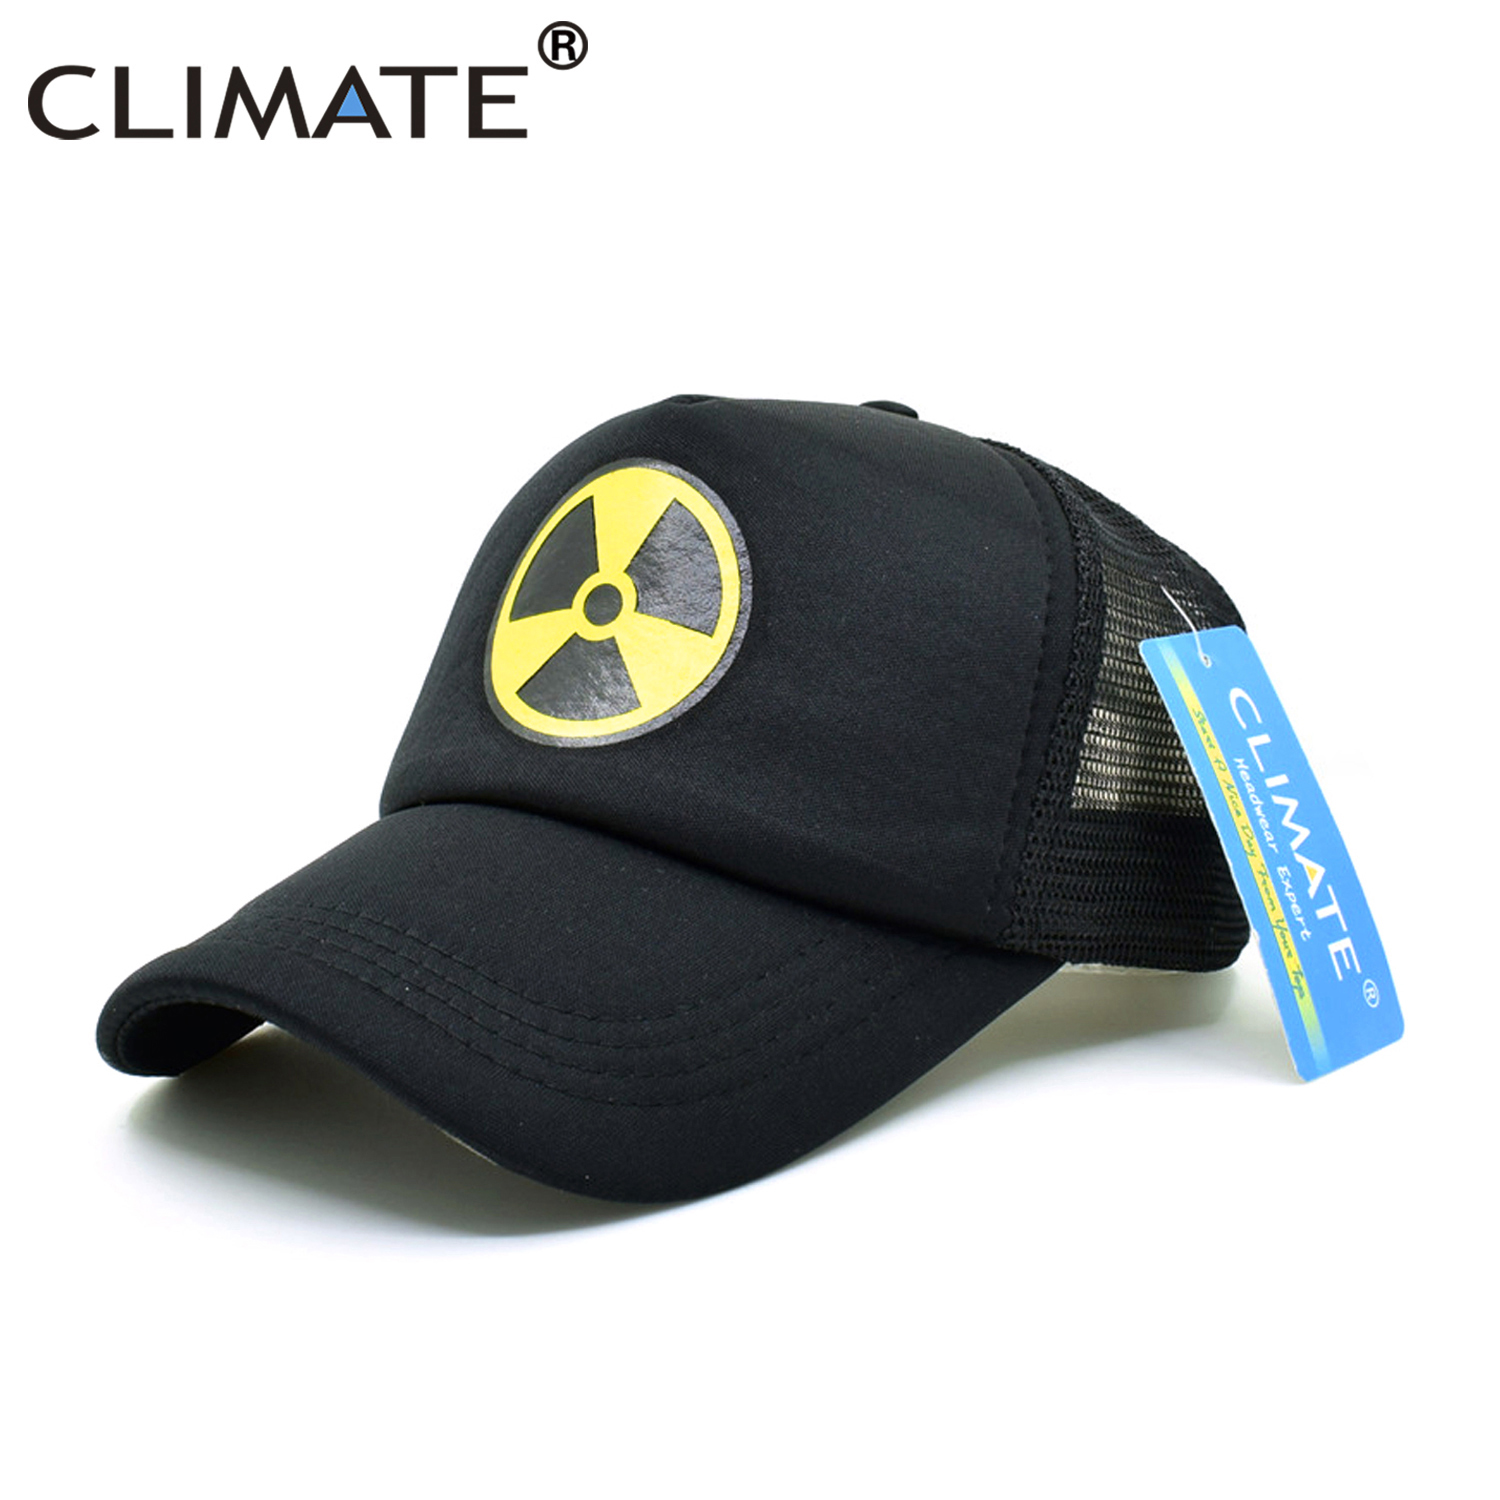 CLIMATE Fallout 4 Shelter Trucker Caps Women Men Black Baseball Cap Summer  Hot Game Fans Cool Mesh Cap X RAY Summer Hat Men Gift-in Baseball Caps from  ... dad04223fe76